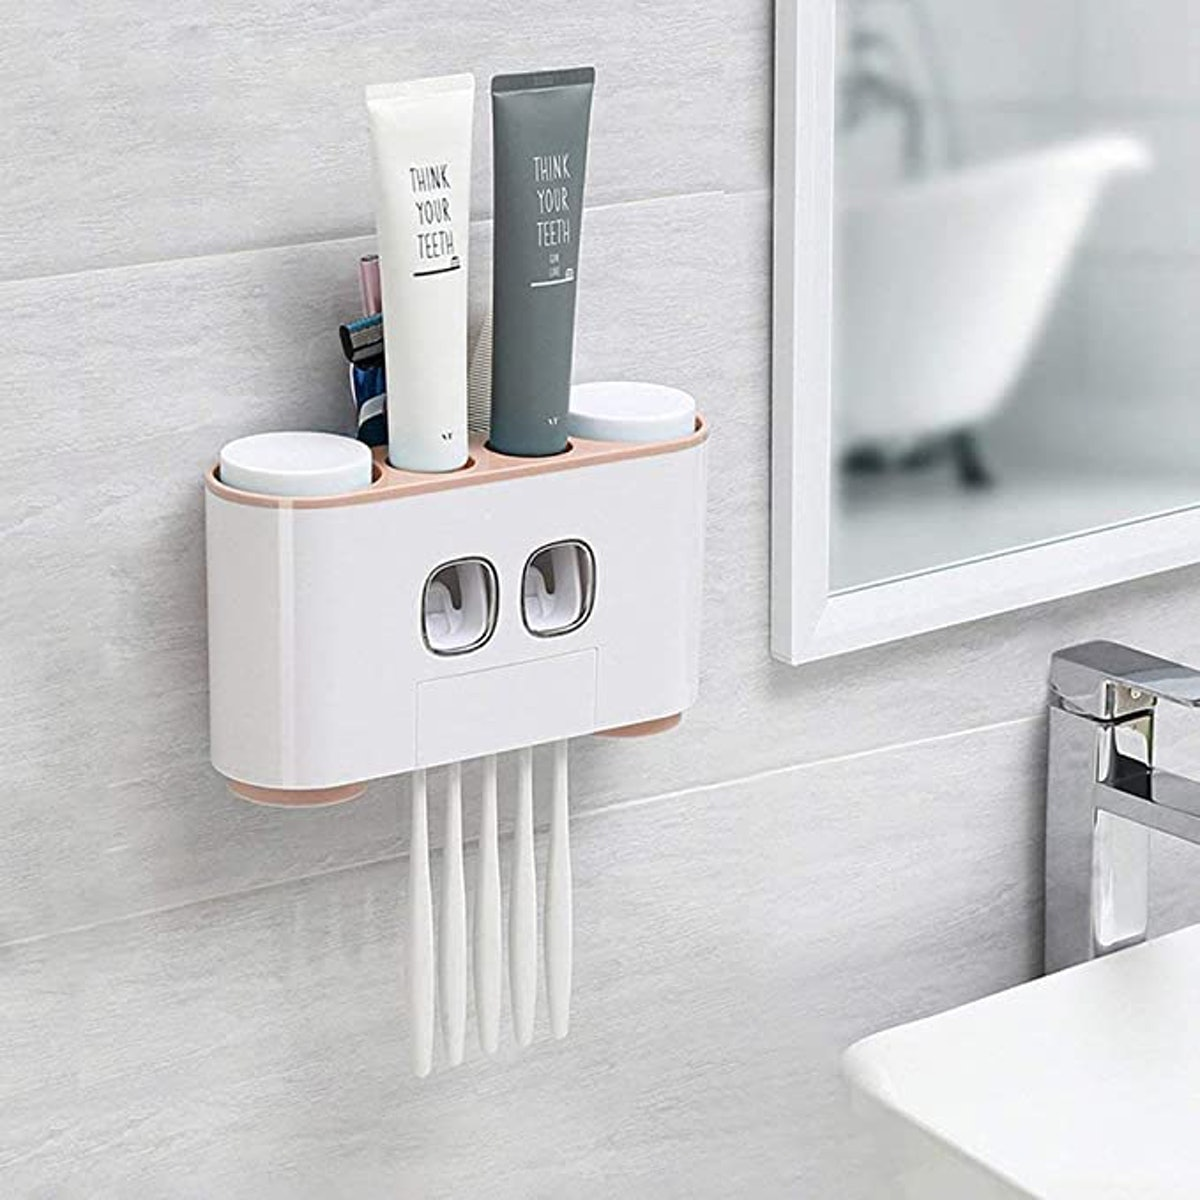 WREWING Multi-Function Toothpaste Dispenser and Dust-Proof Toothbrush Holder